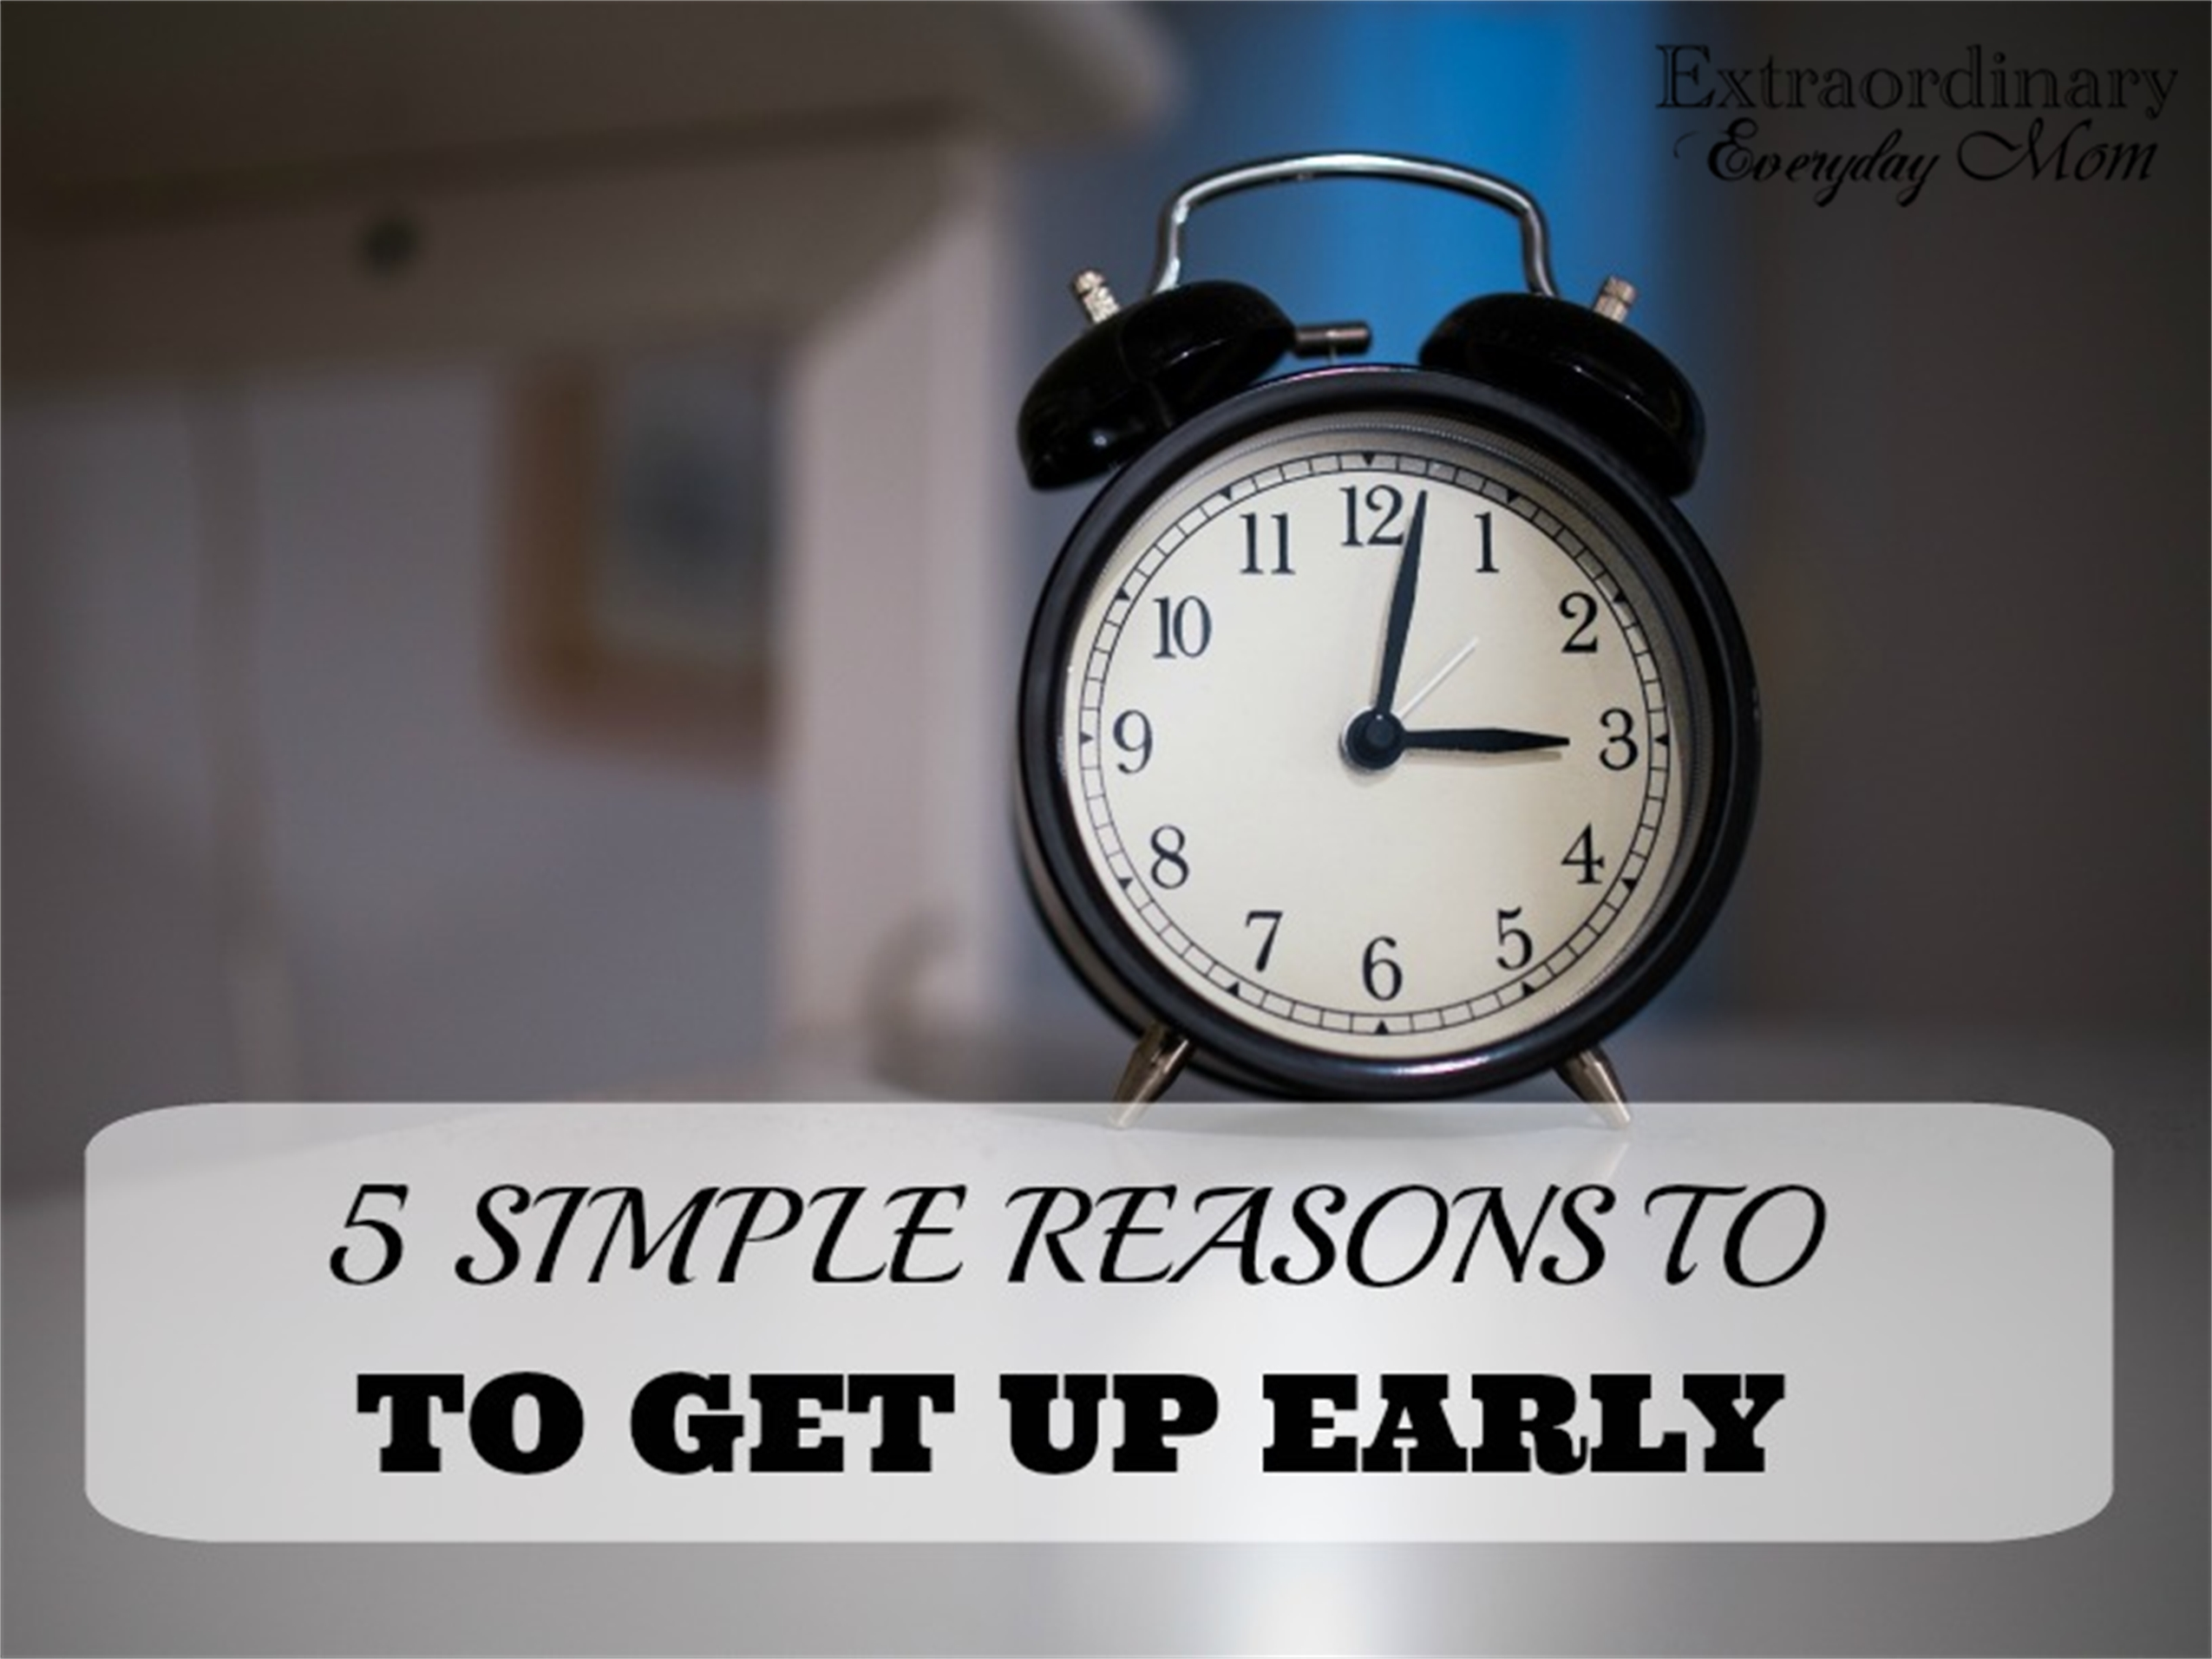 5 Simple Reasons to Get Up Early